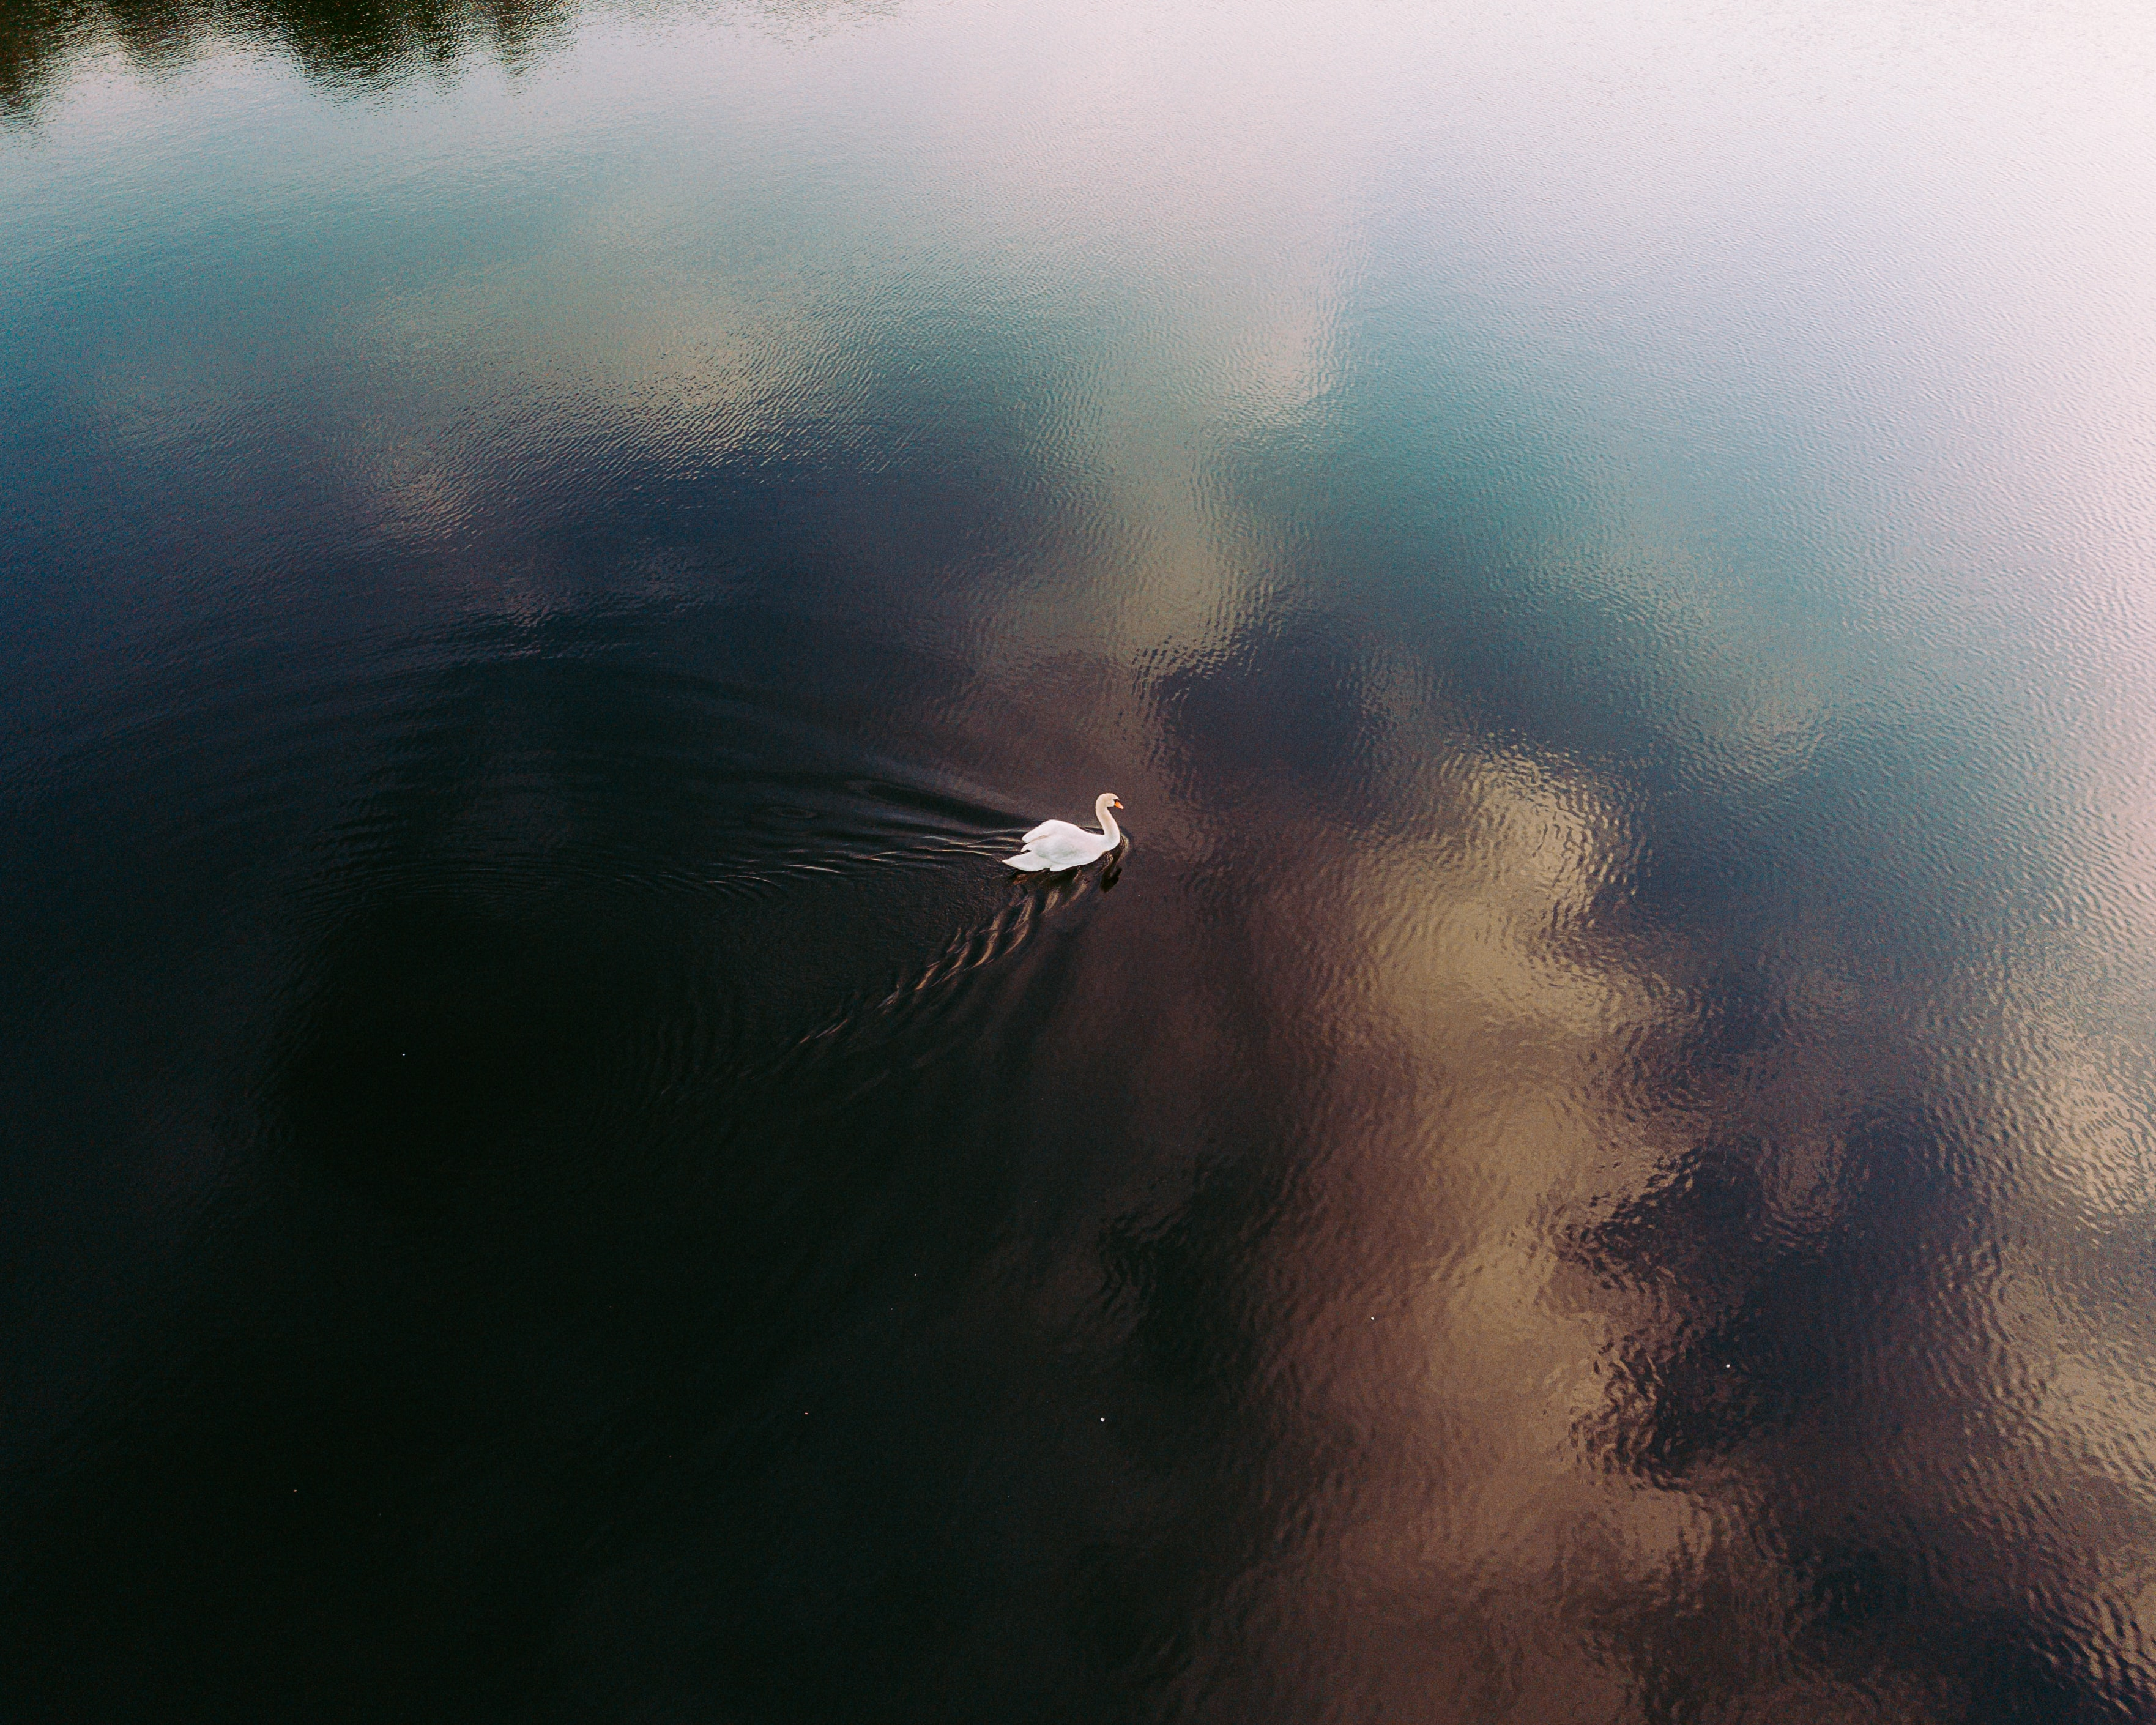 white swan swimming on body of water during daytime